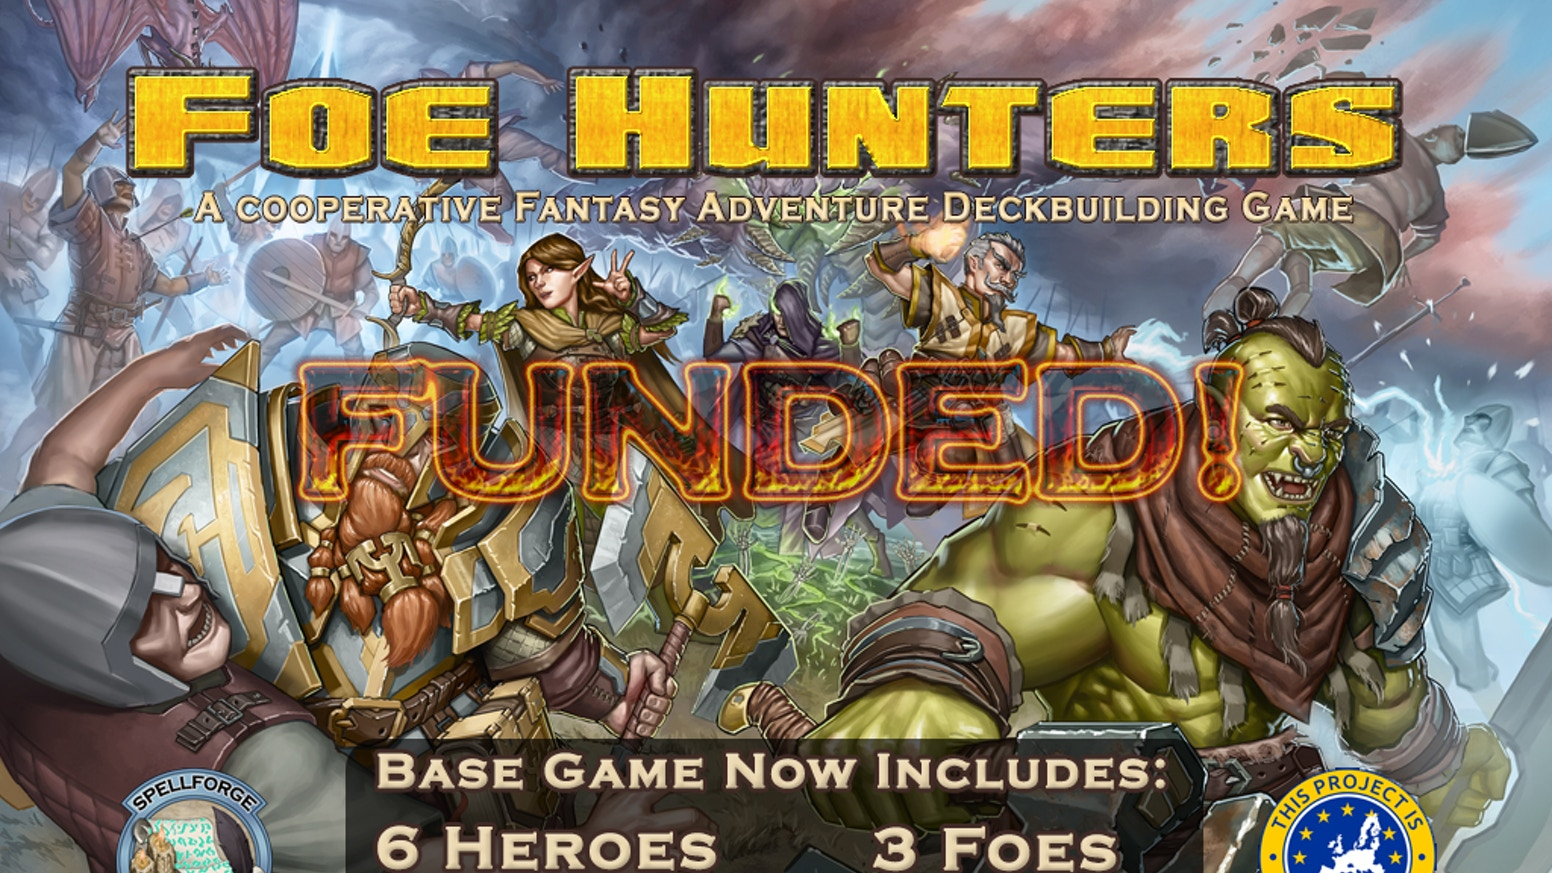 Foe Hunters is an exciting cooperative, multiplayer deckbuilding/adventure game set in the realm of high fantasy!